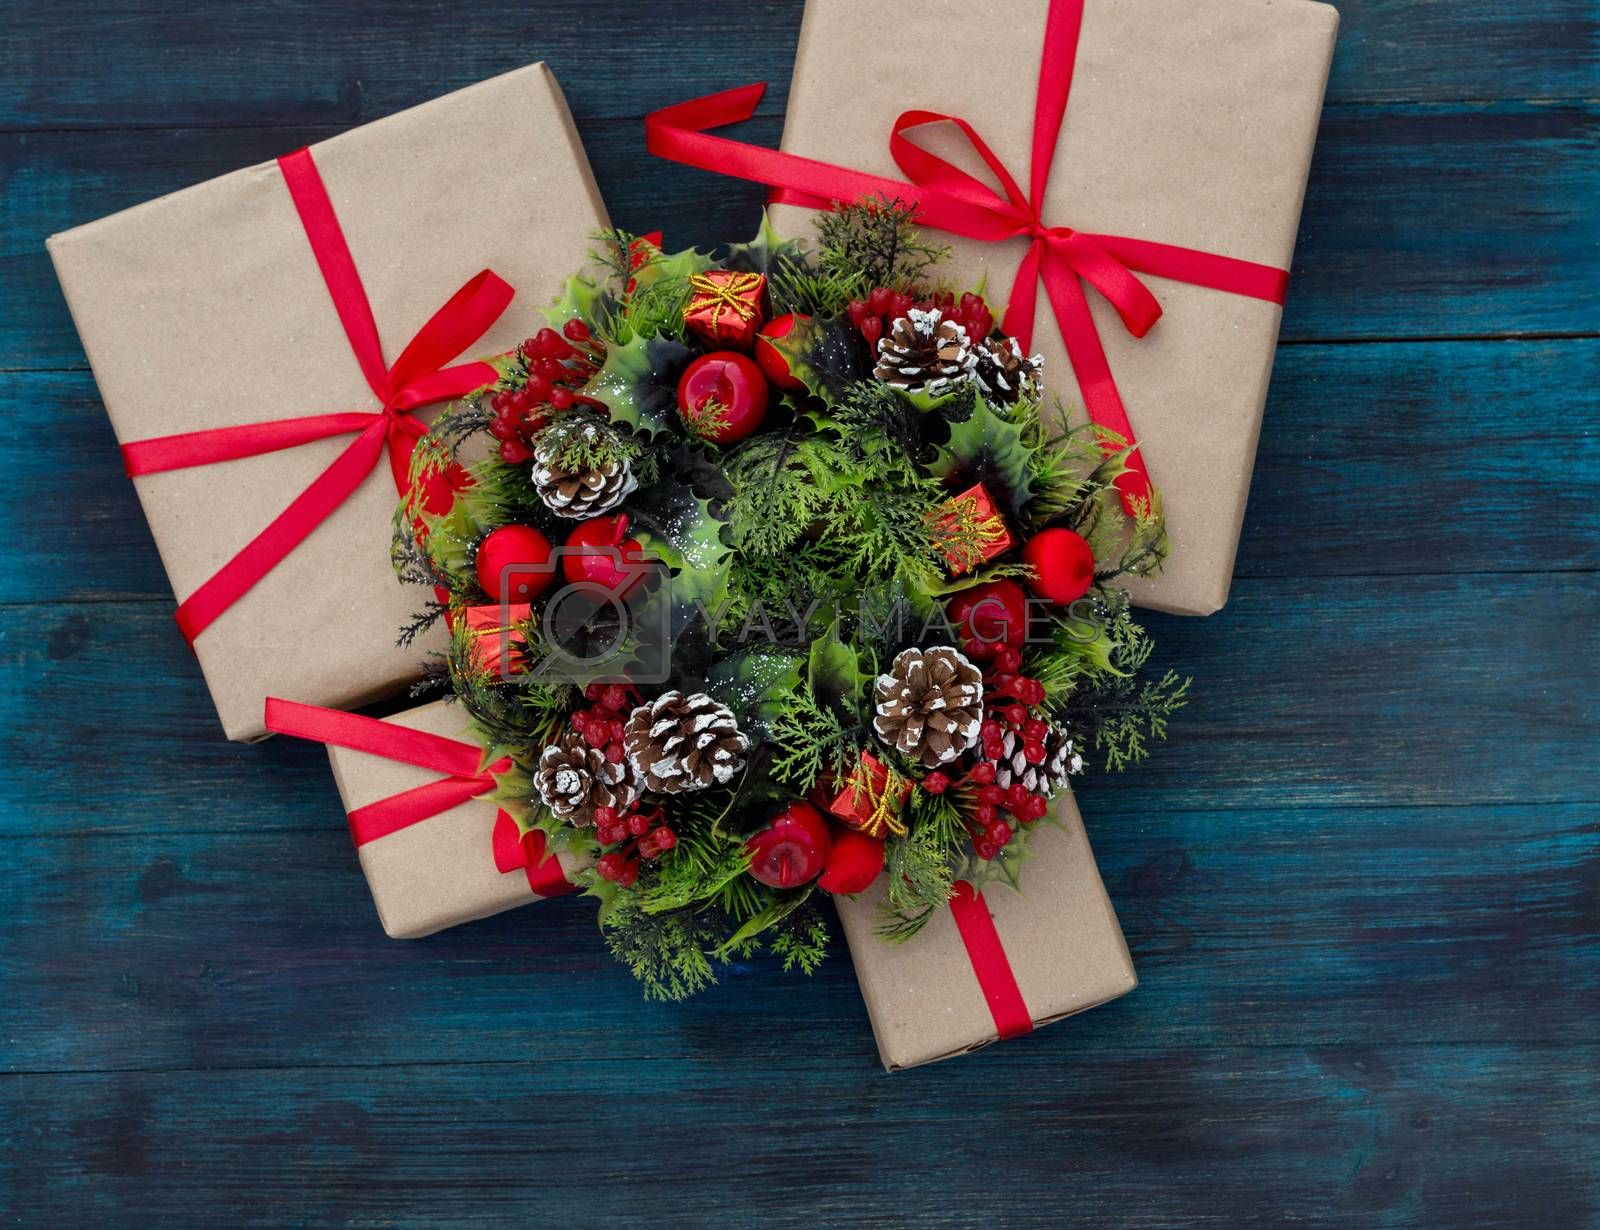 .Christmas background with gifts tied with a red ribbon and decorative wreath